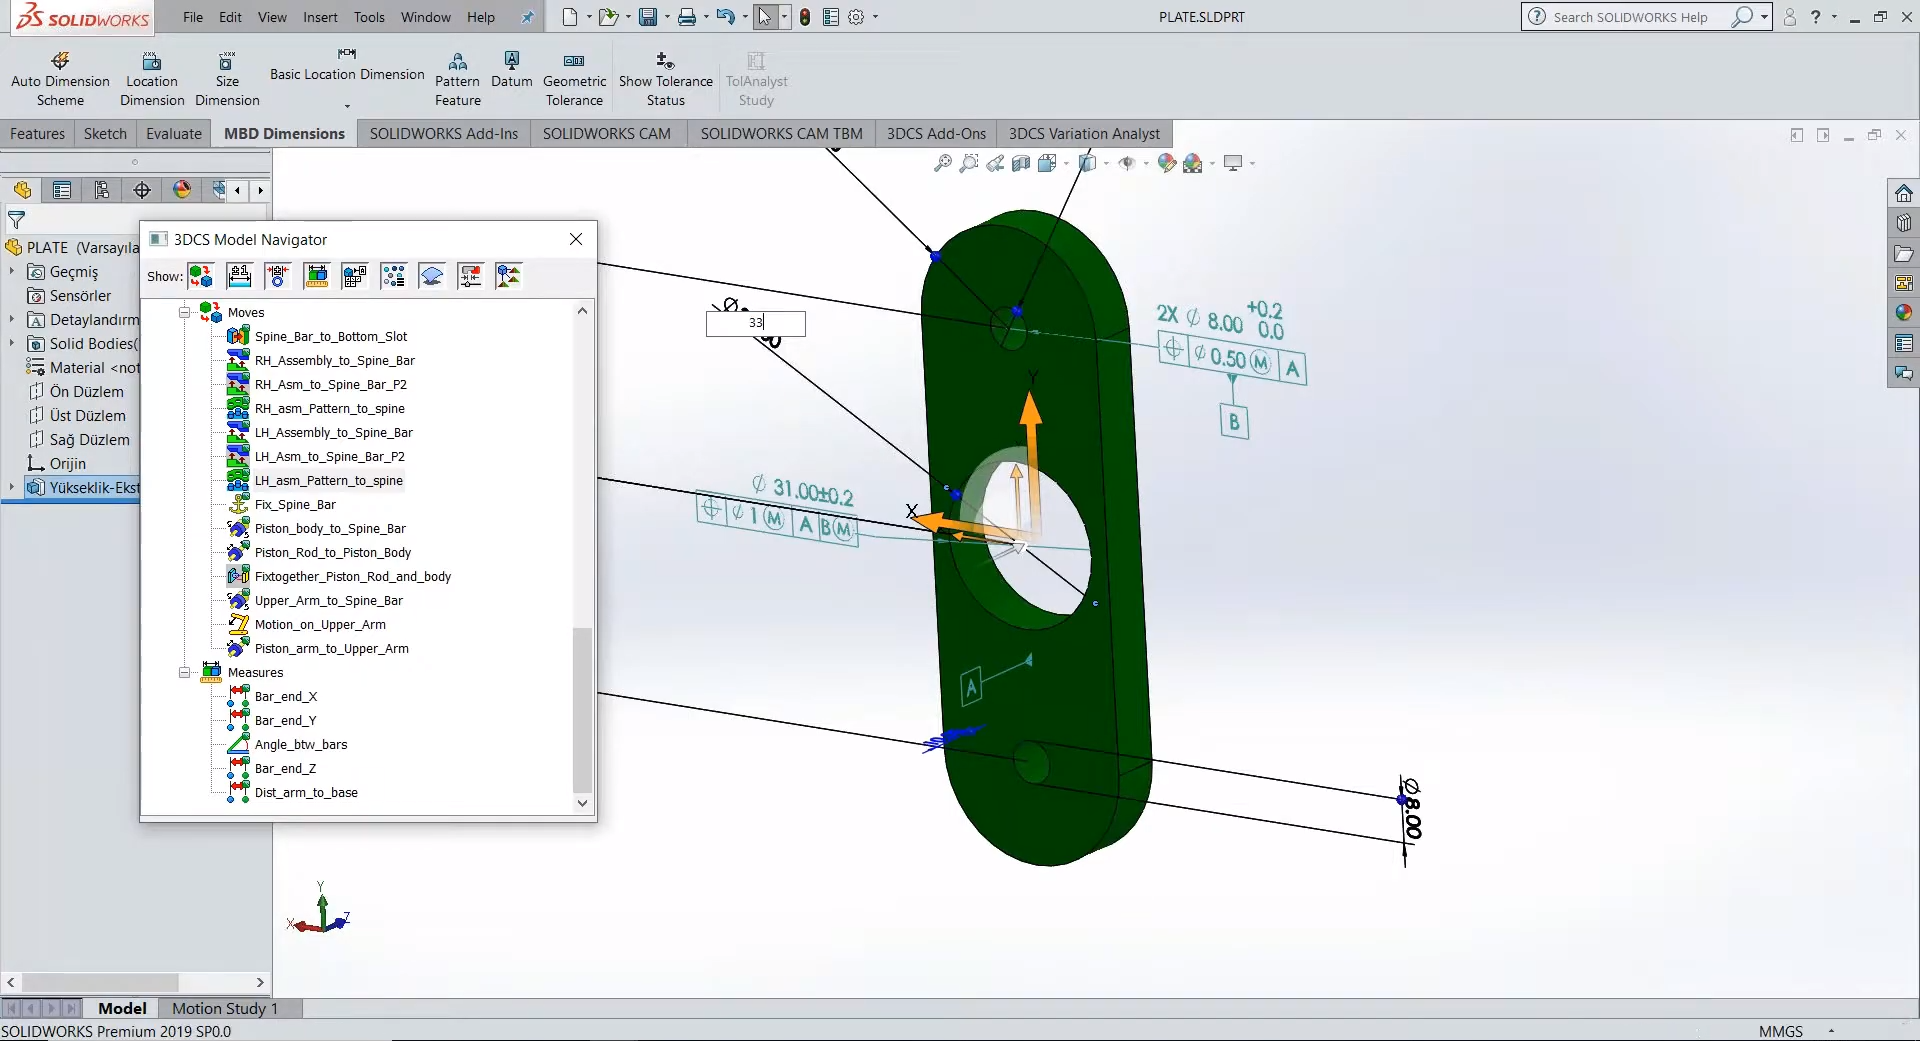 SOLIDWORKS Tolerance Analysis   3DCS Variation Analyst for